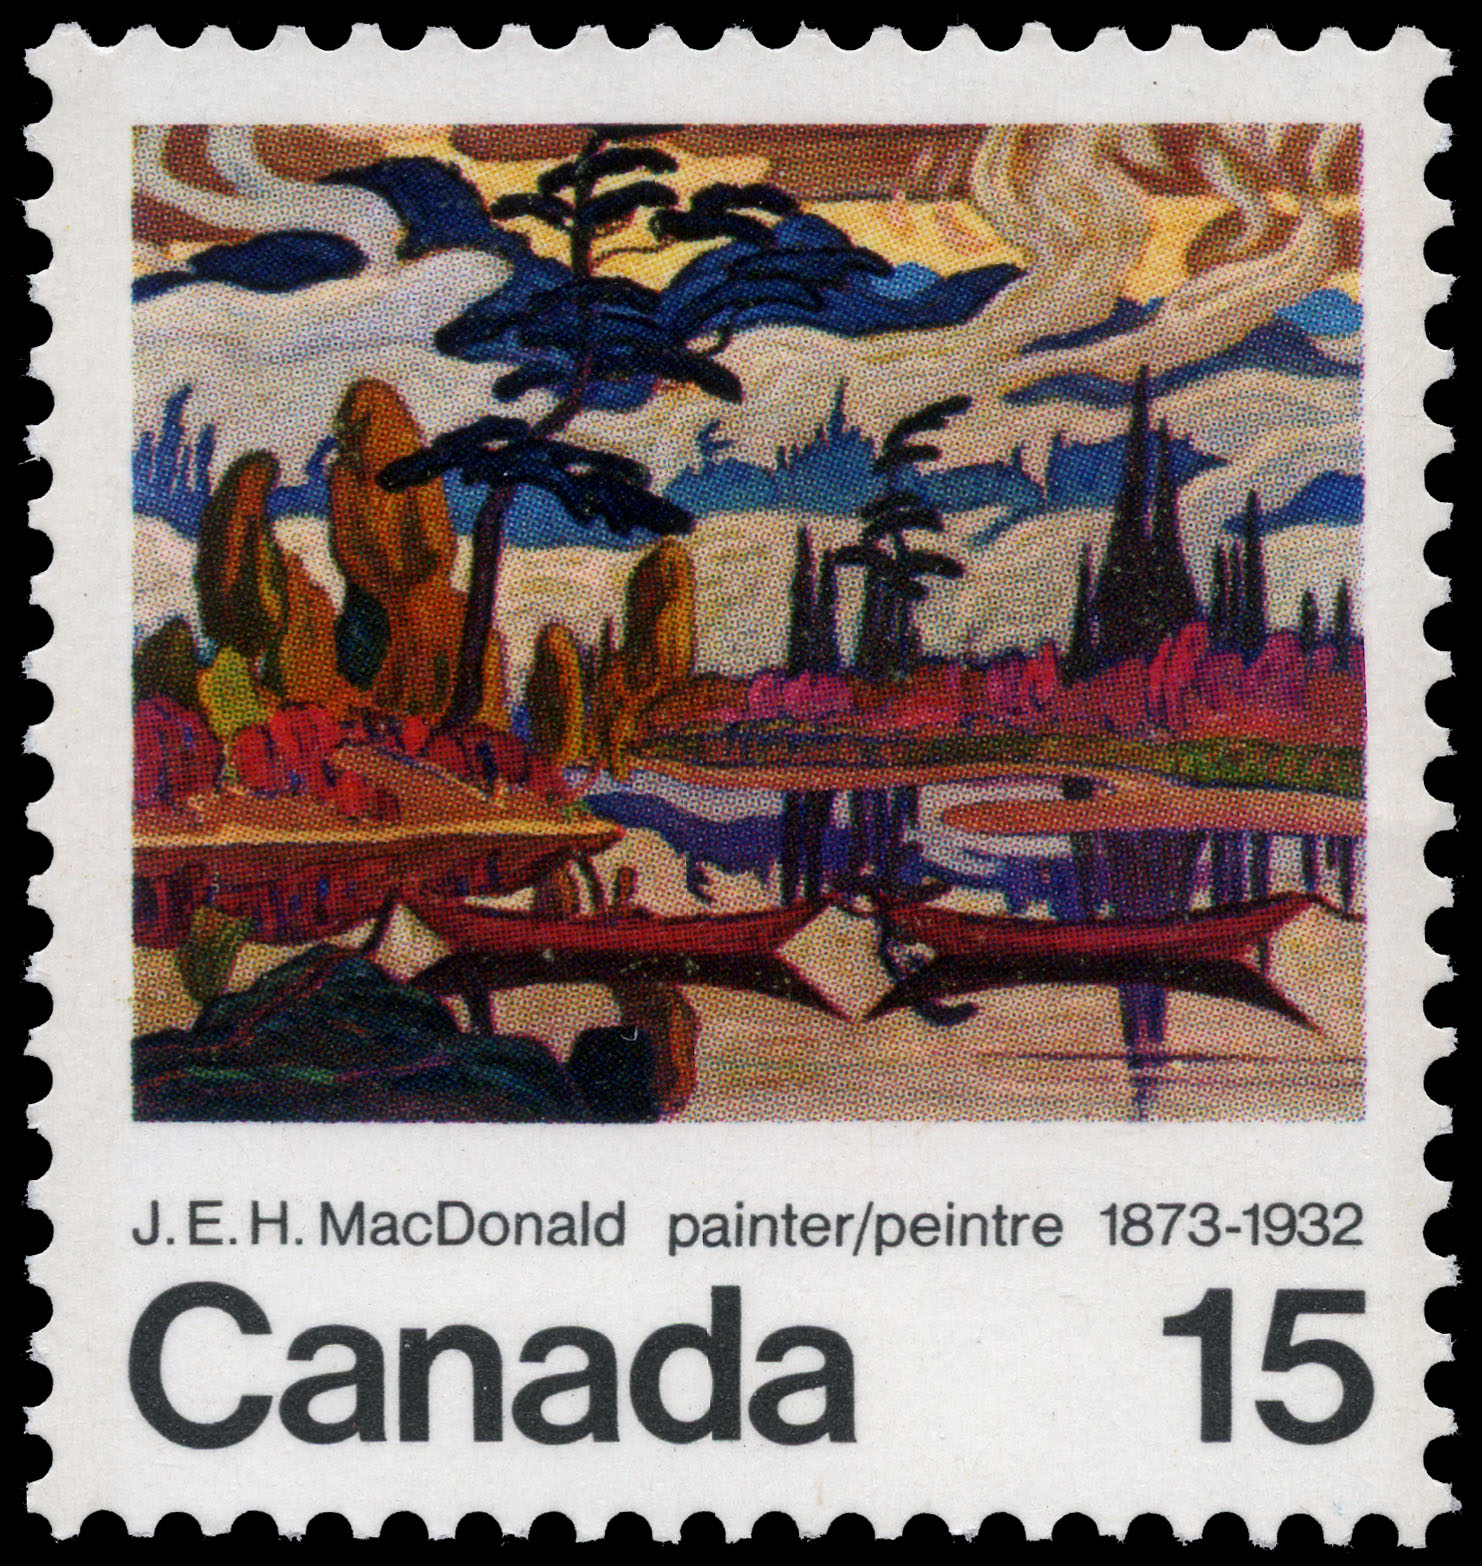 J.E.H. MacDonald, painter, 1873-1932 Canada Postage Stamp